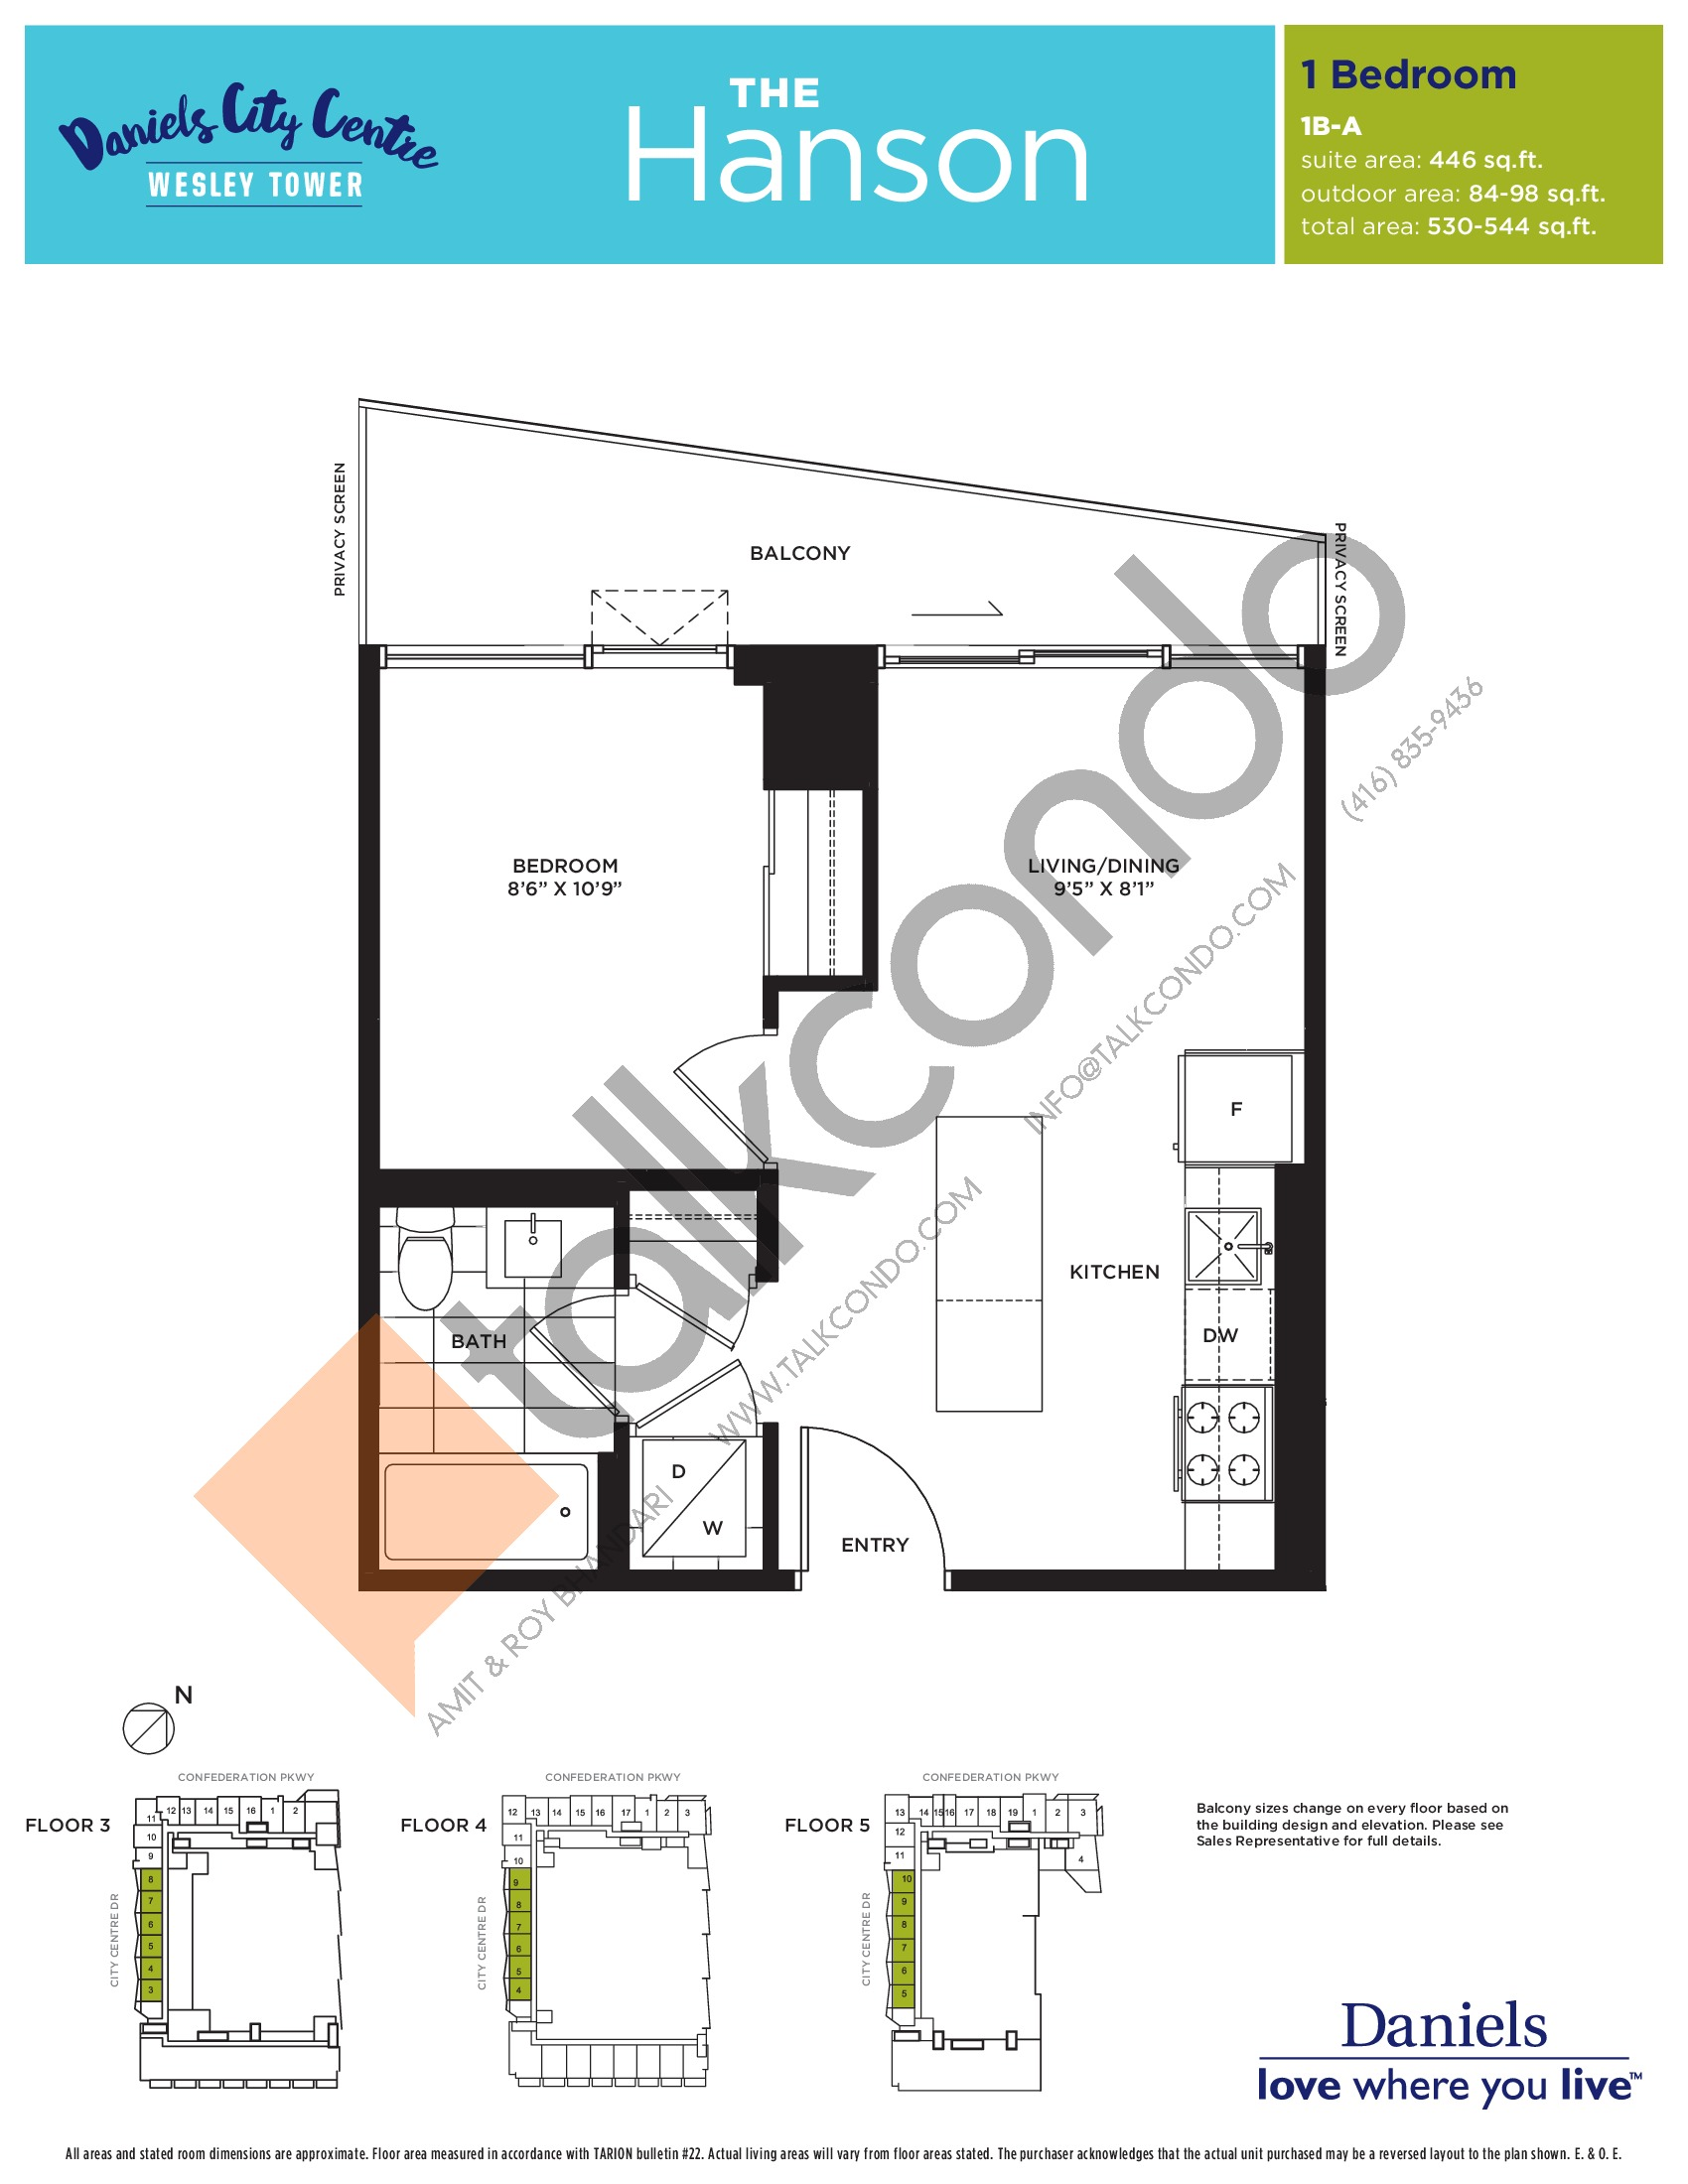 The Hanson Floor Plan at The Wesley Tower at Daniels City Centre Condos - 446 sq.ft